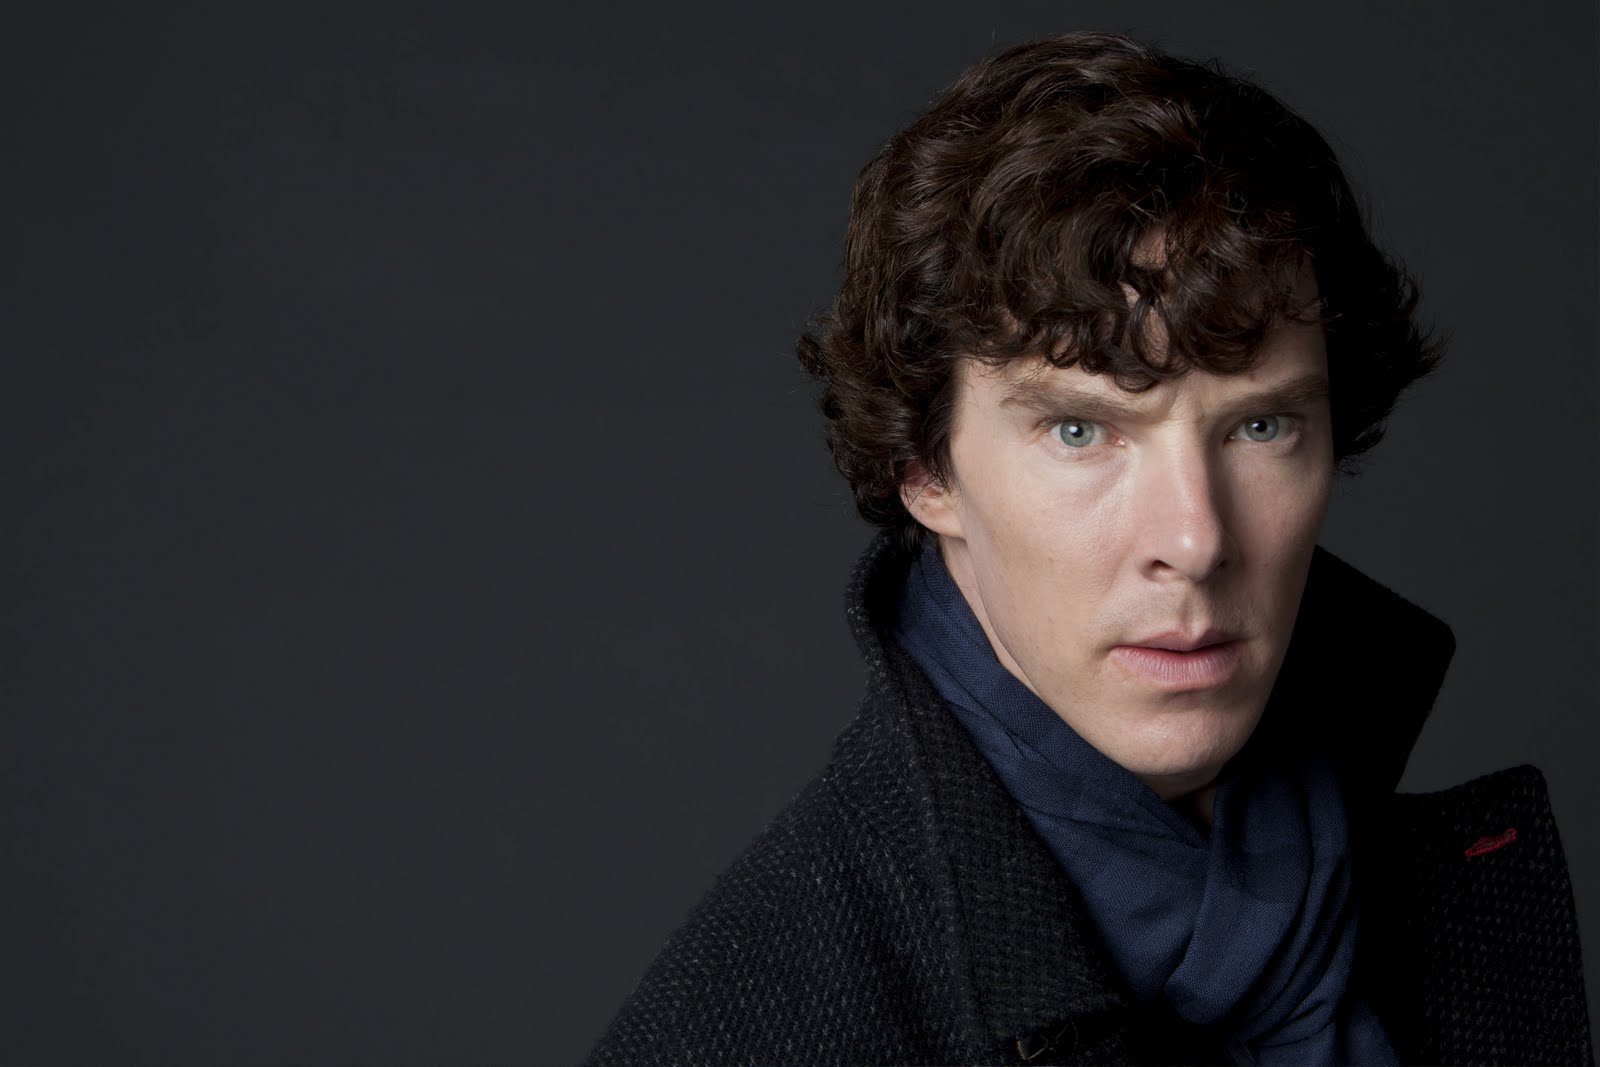 Benedict Cumberbatch Next Up for 'Twelve Years a Slave'